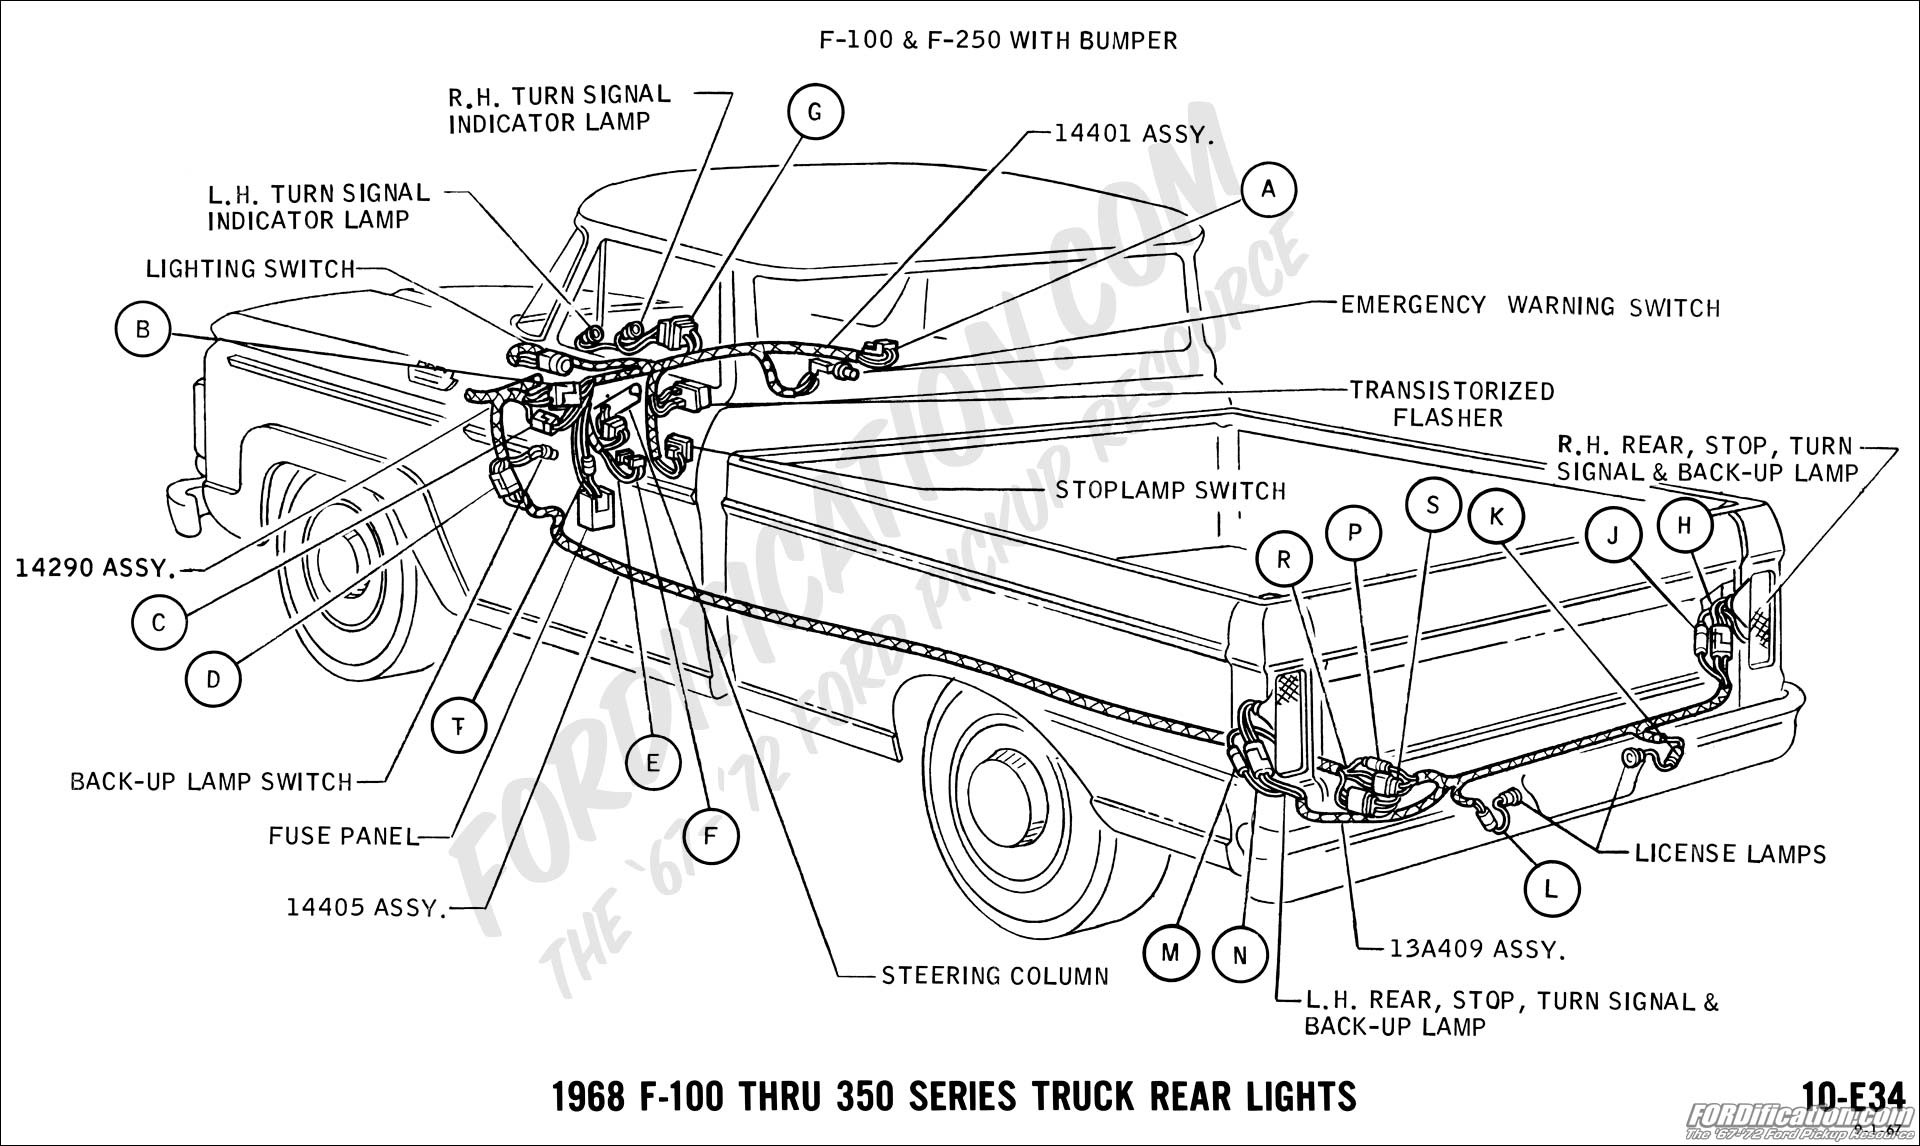 Wiring 2005 Ford Escape Parts Library Diagram Wire Kmestc My V6 Engine